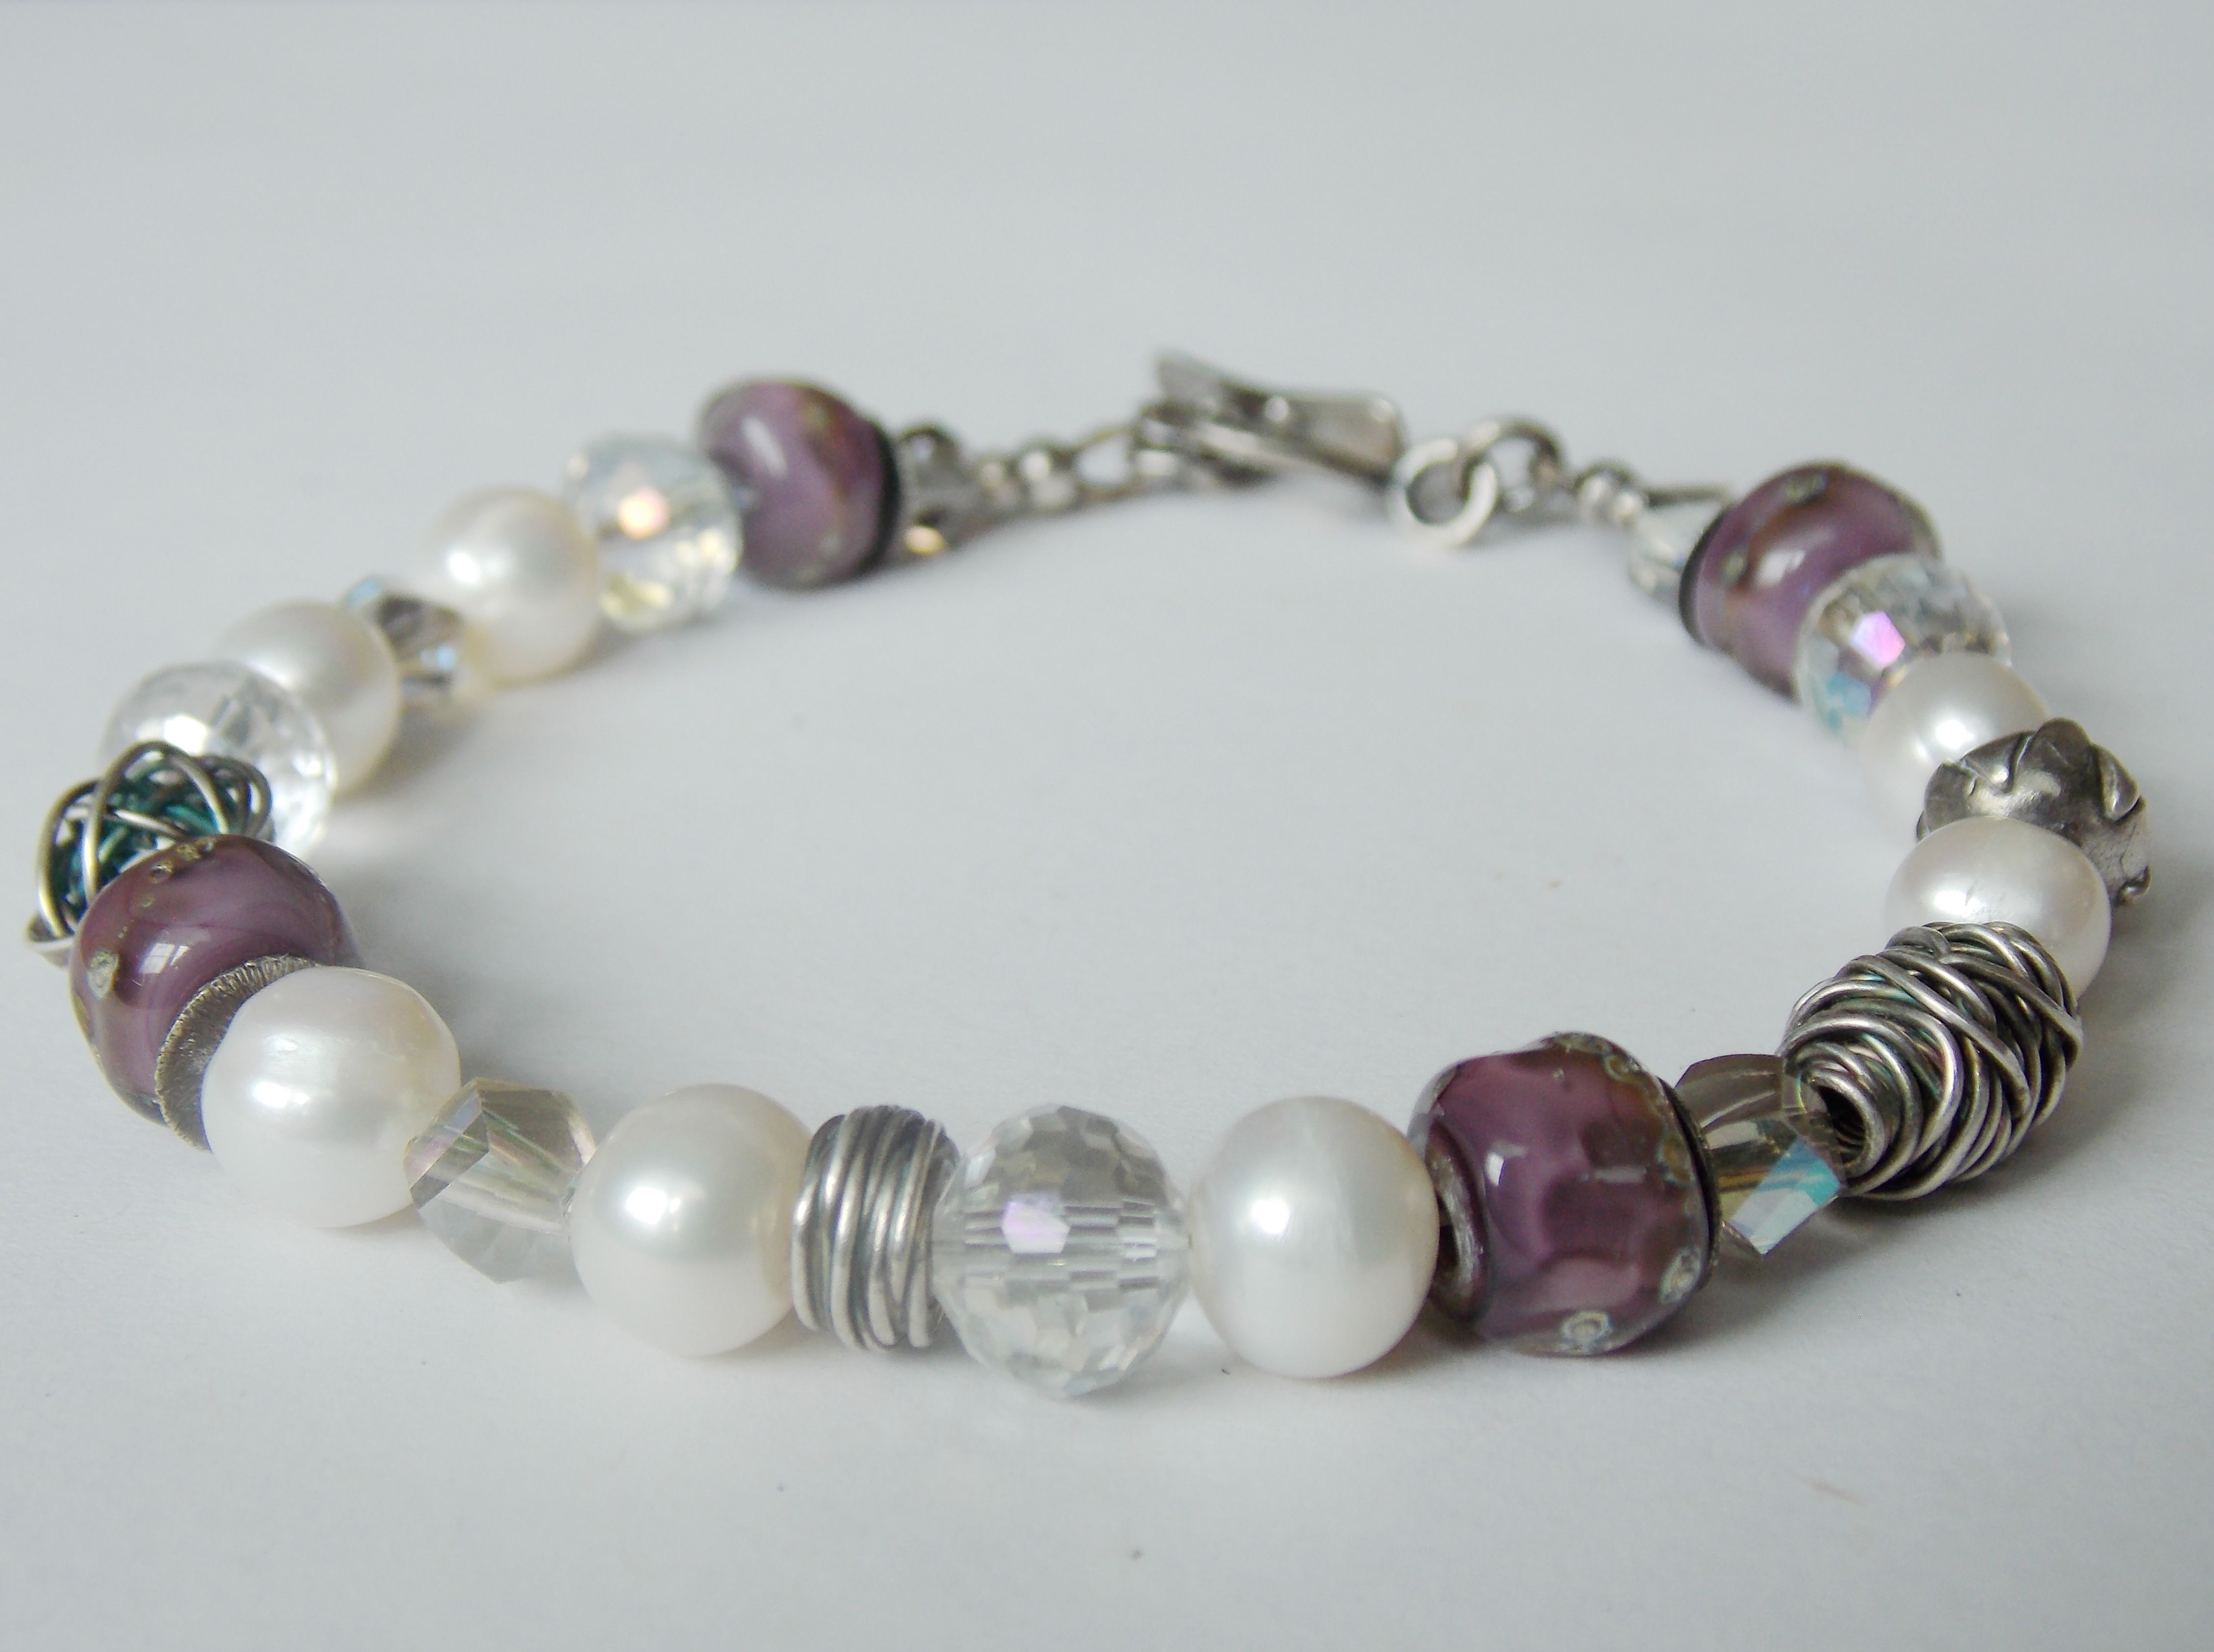 Misty Plum Bracelet!  -Oxidized sterling silver and hand-polished!